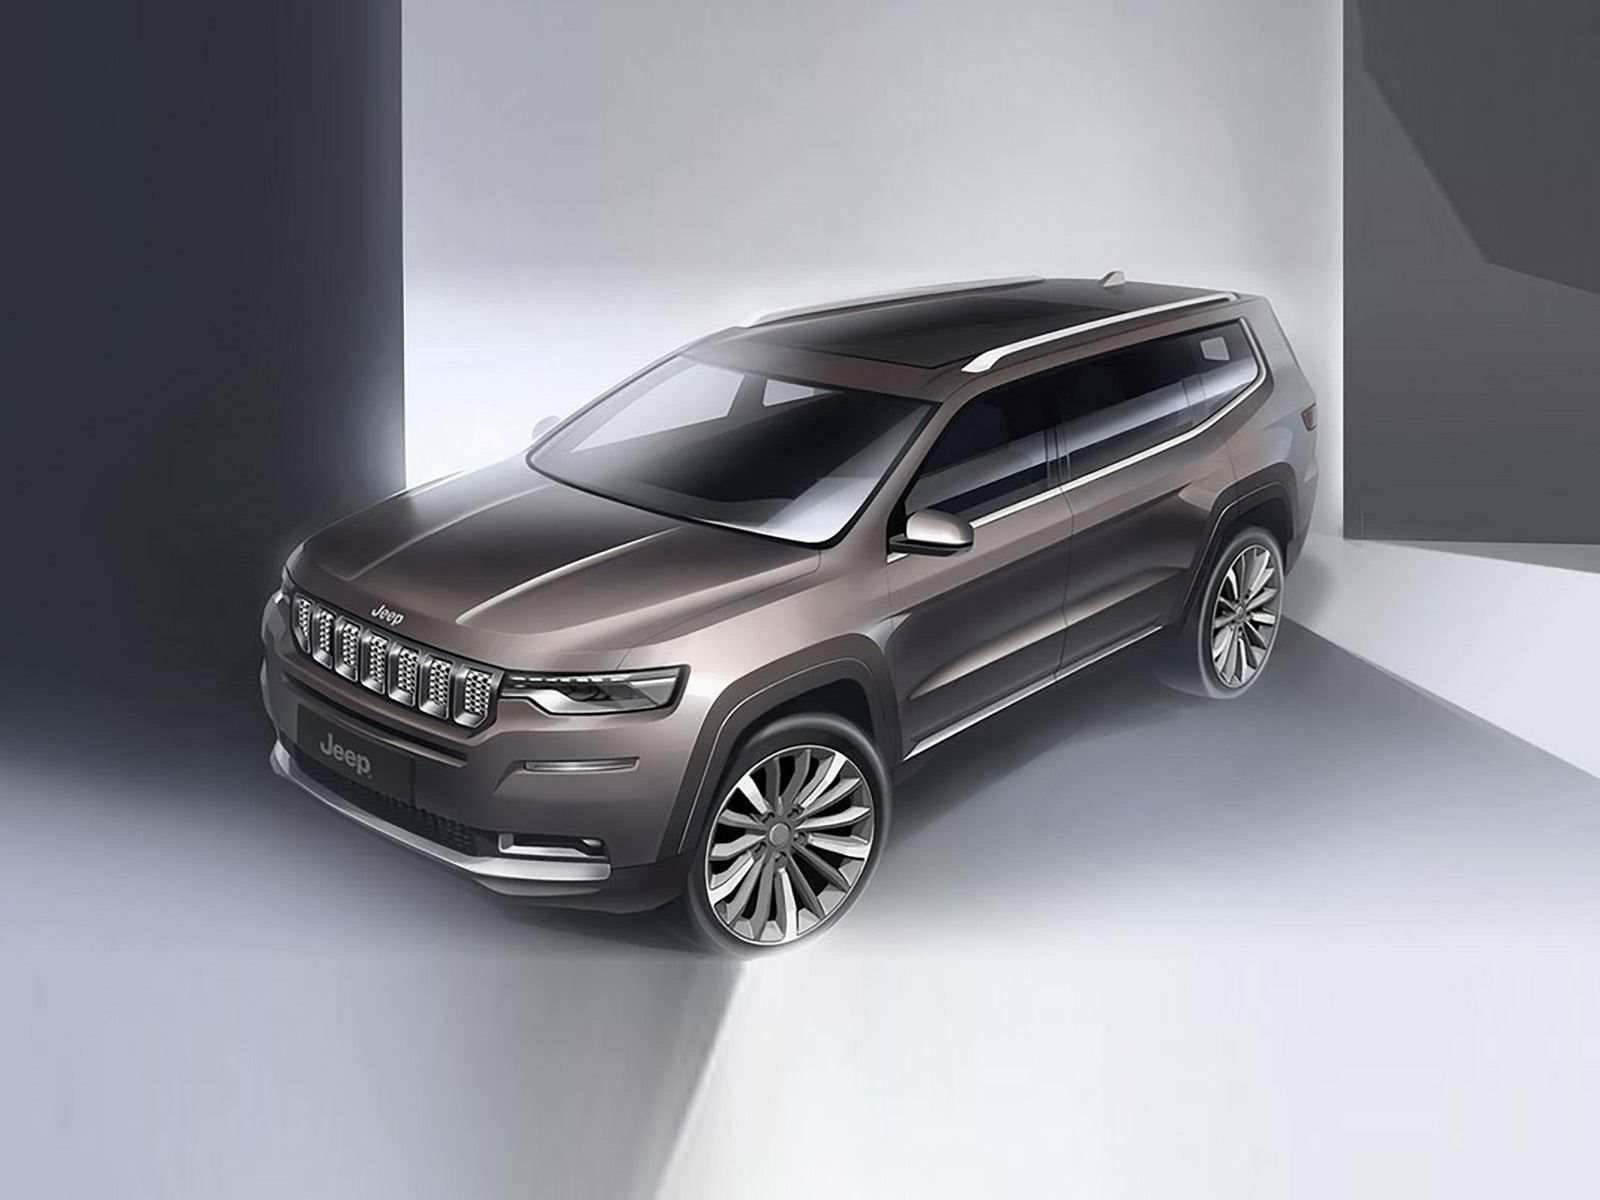 16 New Jeep Grand Cherokee 2020 Concept Research New